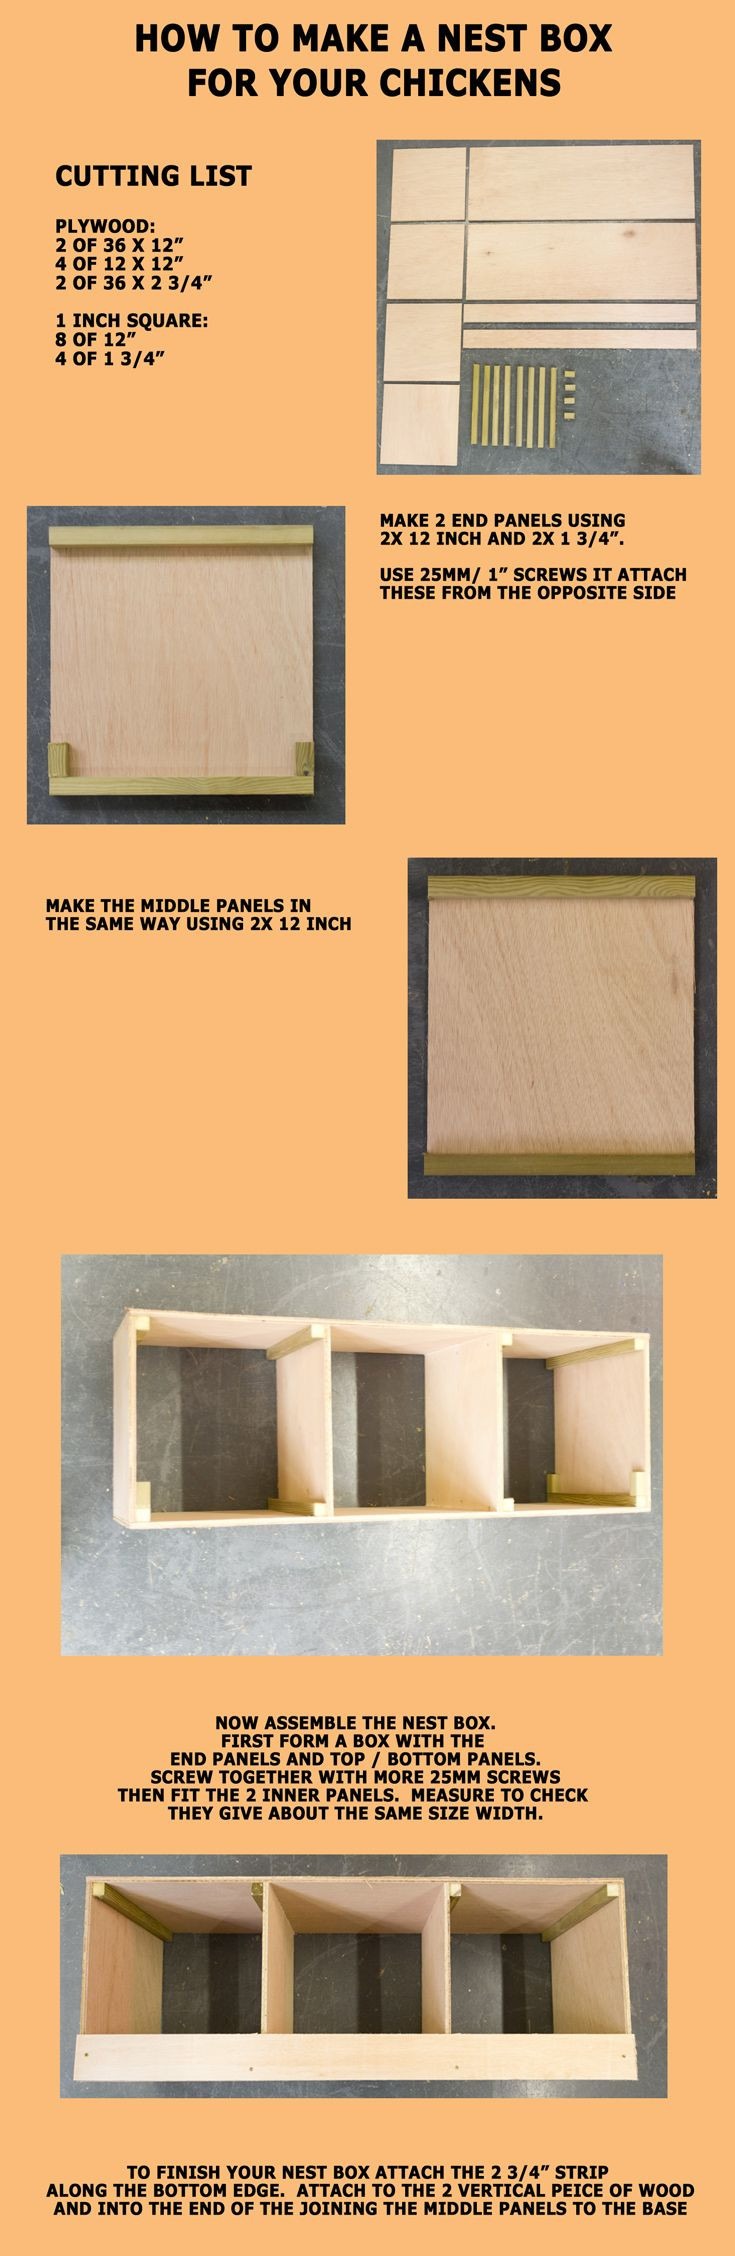 """Where we show you how to build a simple, plywood nest box for your chickens.   You'll need some 9mm plywood and some 12 square timber - 1"""" timber is normally  finished to around 20mm.  The top and bottom of the nest box are made from 36x12"""" peices of plywood. There are 4 vertical dividers made from 12x12"""" plywood. along the front of the nest box is a strip of ply, 36x2 3/4"""" to contain the bedding.  There is one of these front and rear. We suggest screwing it all together with 25mmx3.5…"""